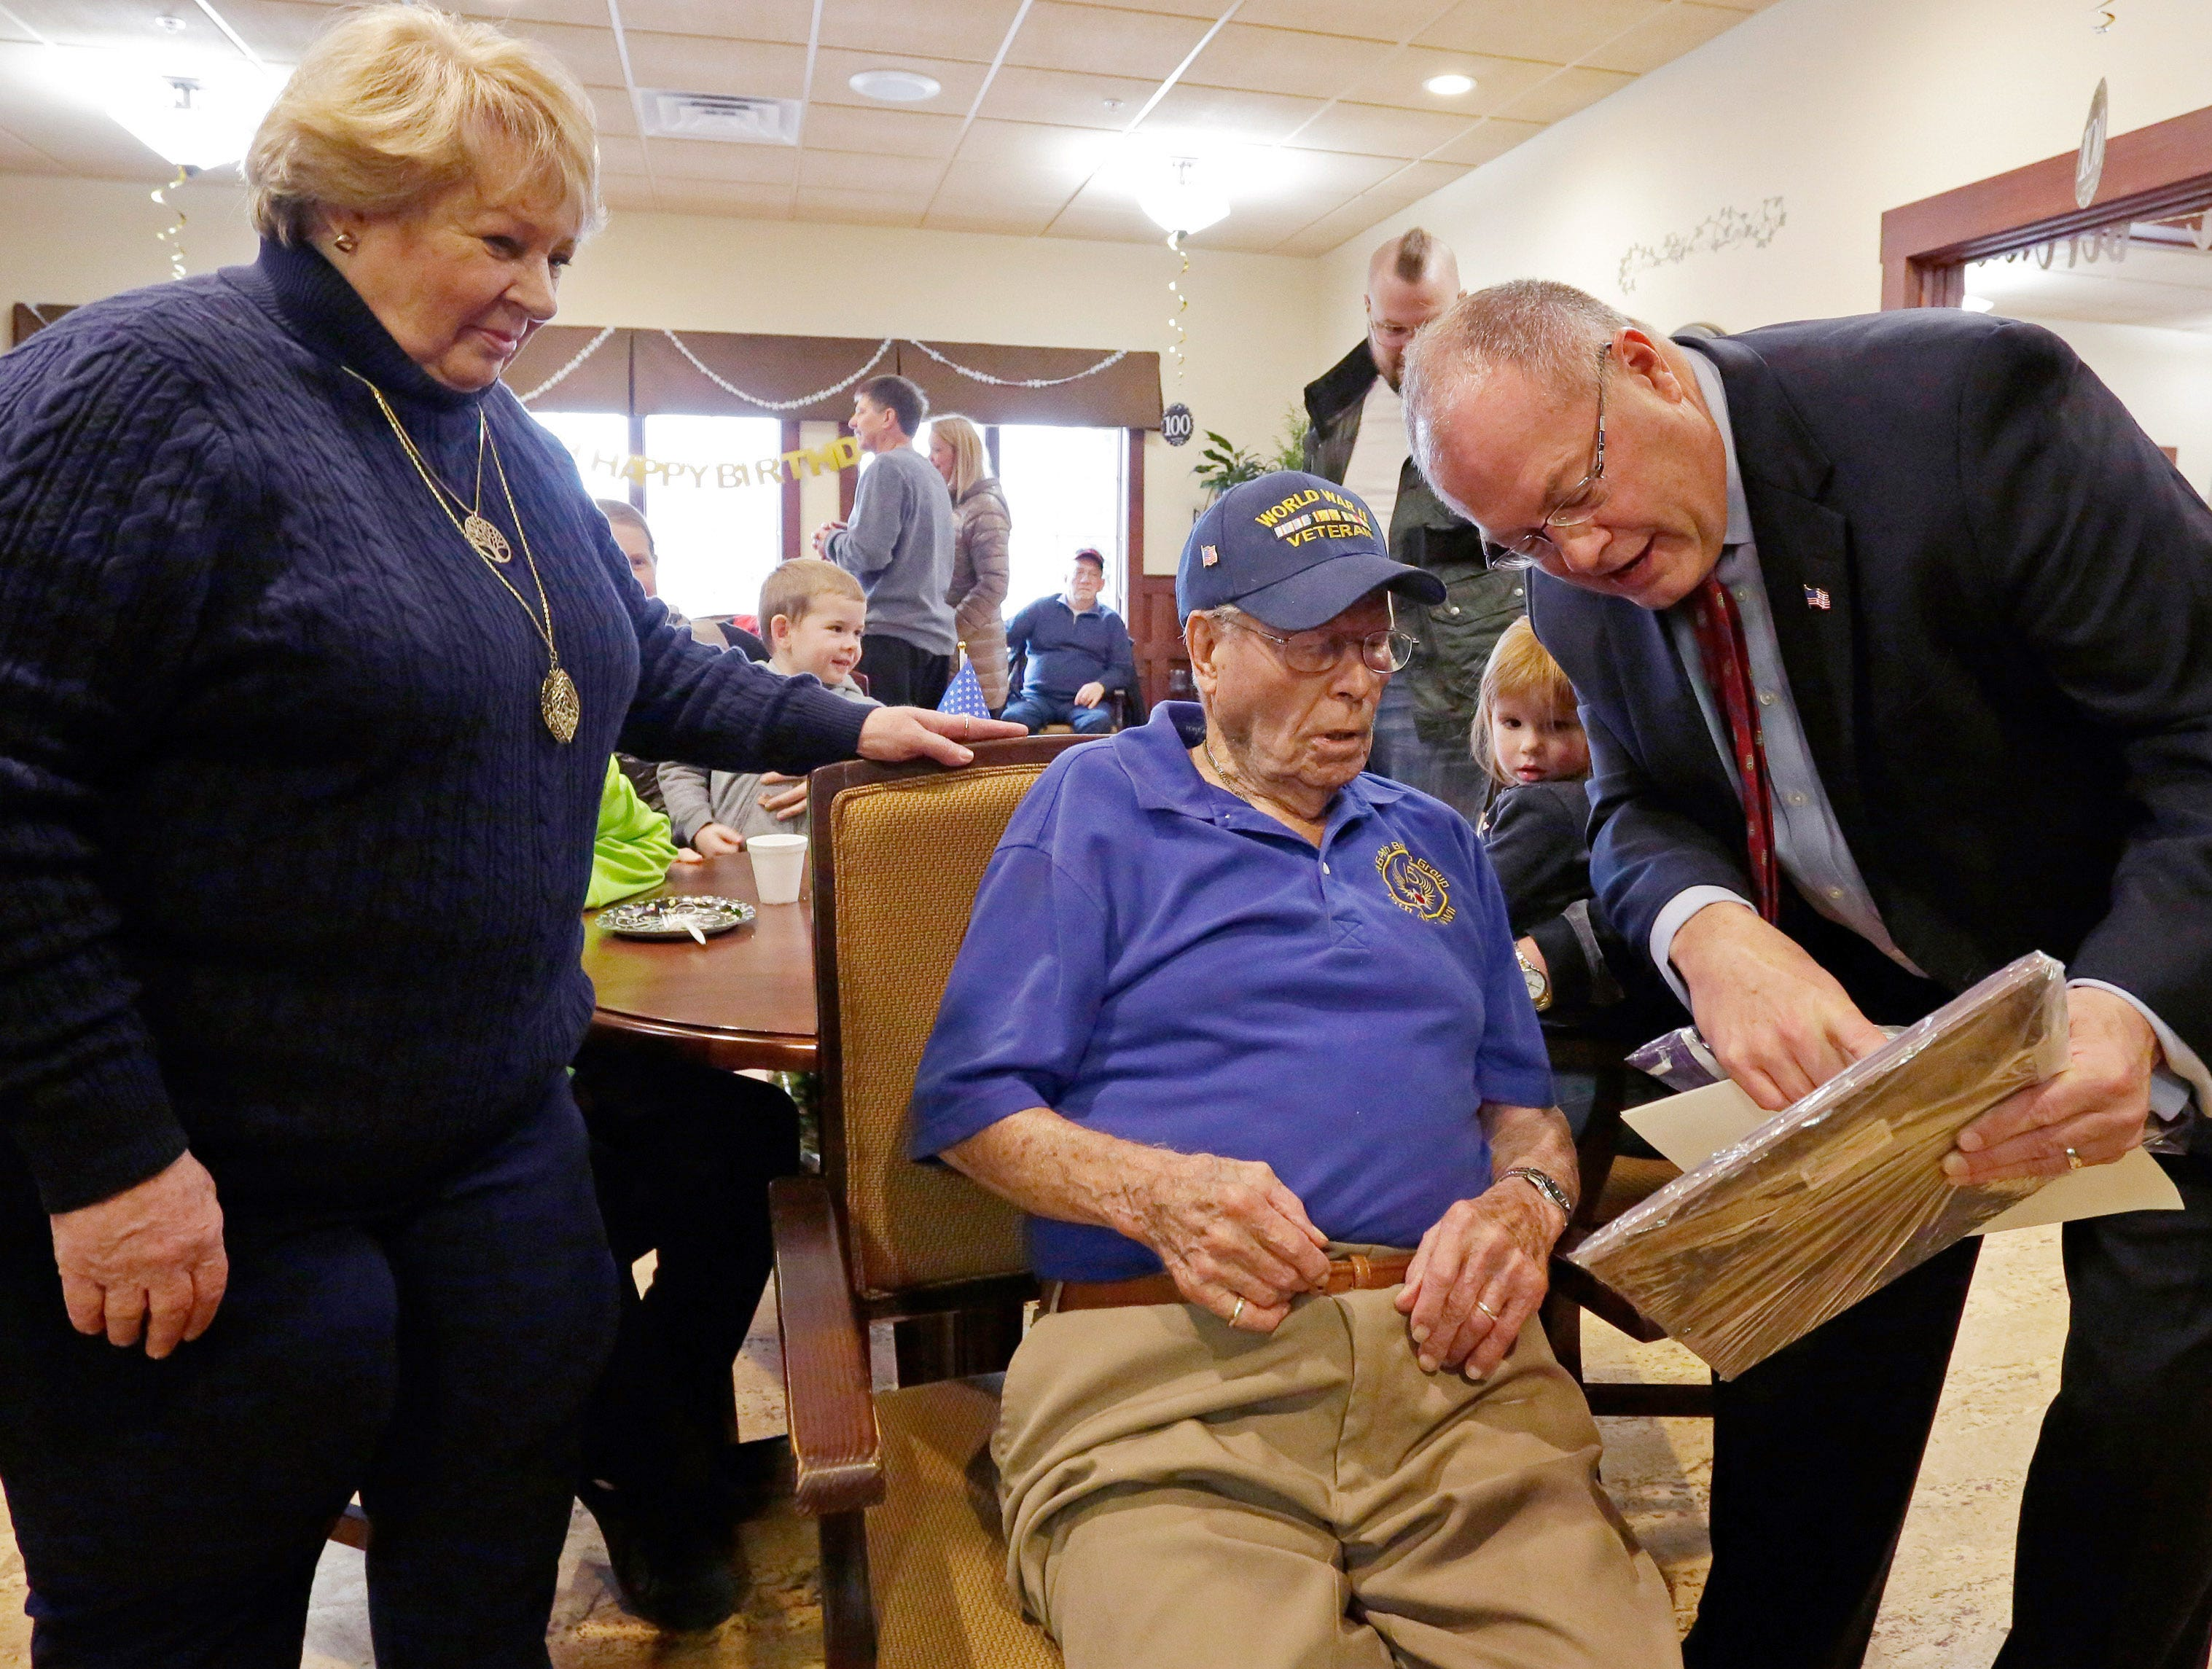 State Representative Terry Katsma, right, reads a proclamation honoring Don Harder for his years of service Friday January 18, 2019, 2019, at Pine Haven Christian Communities in Oostburg, Wis. At left is Harder's daughter Janee McCallum of Seattle, Washington.